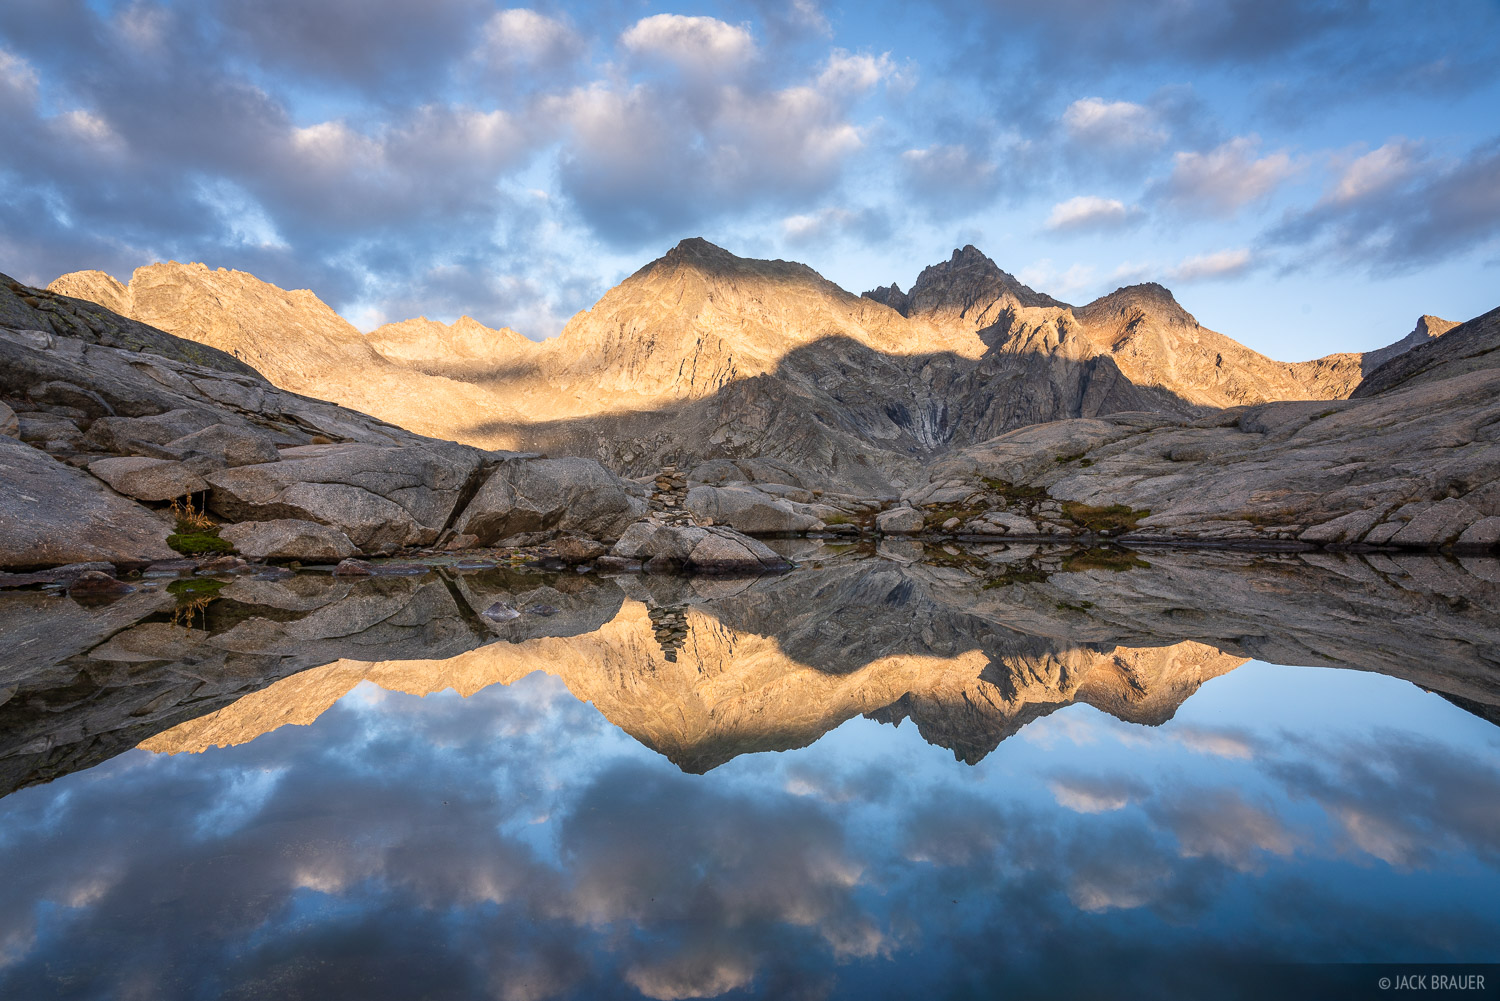 Bernina Range, Cima dal Largh, Piz Bacun, Piz Casnil, Rhaetian Alps, Switzerland, reflection, photo